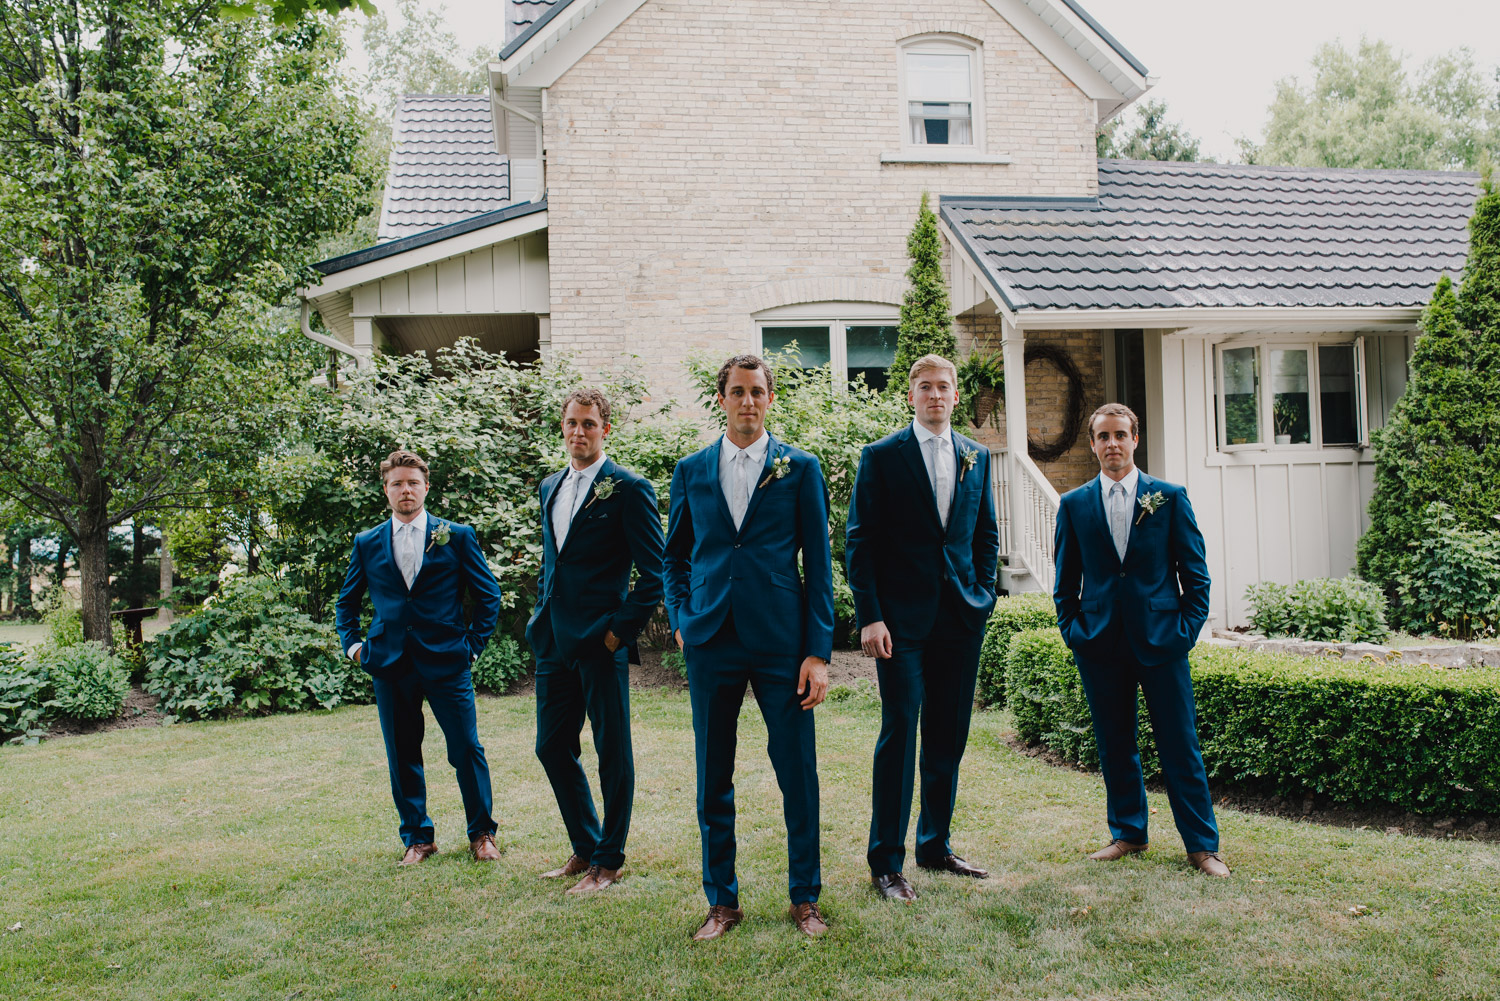 The groomsmen pose for a photo